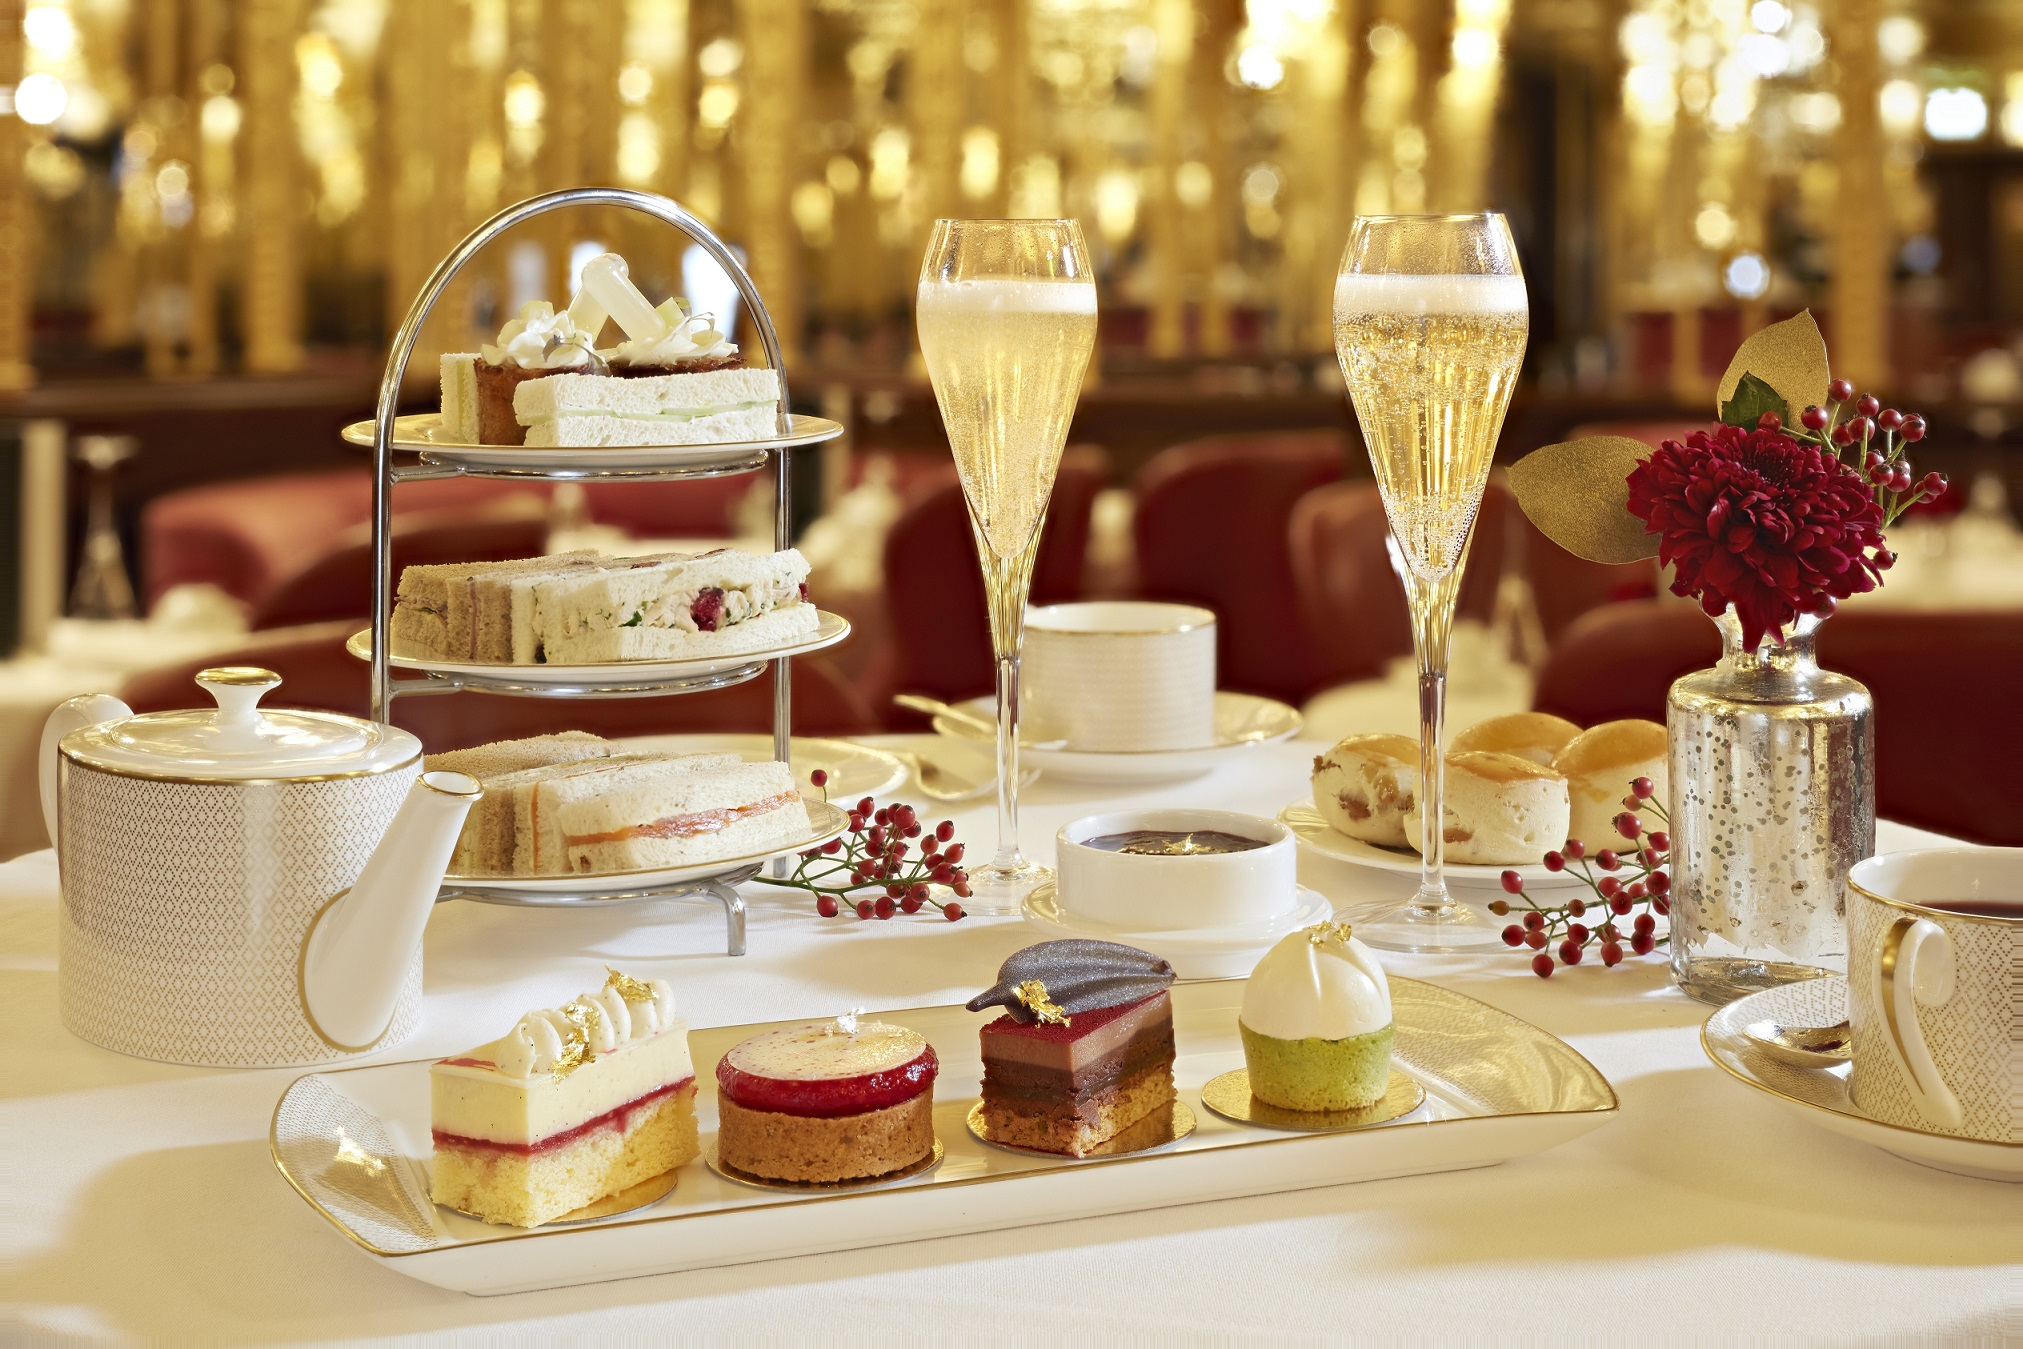 Festive Diptyque Afternoon Tea, Hotel Cafe Royal, London